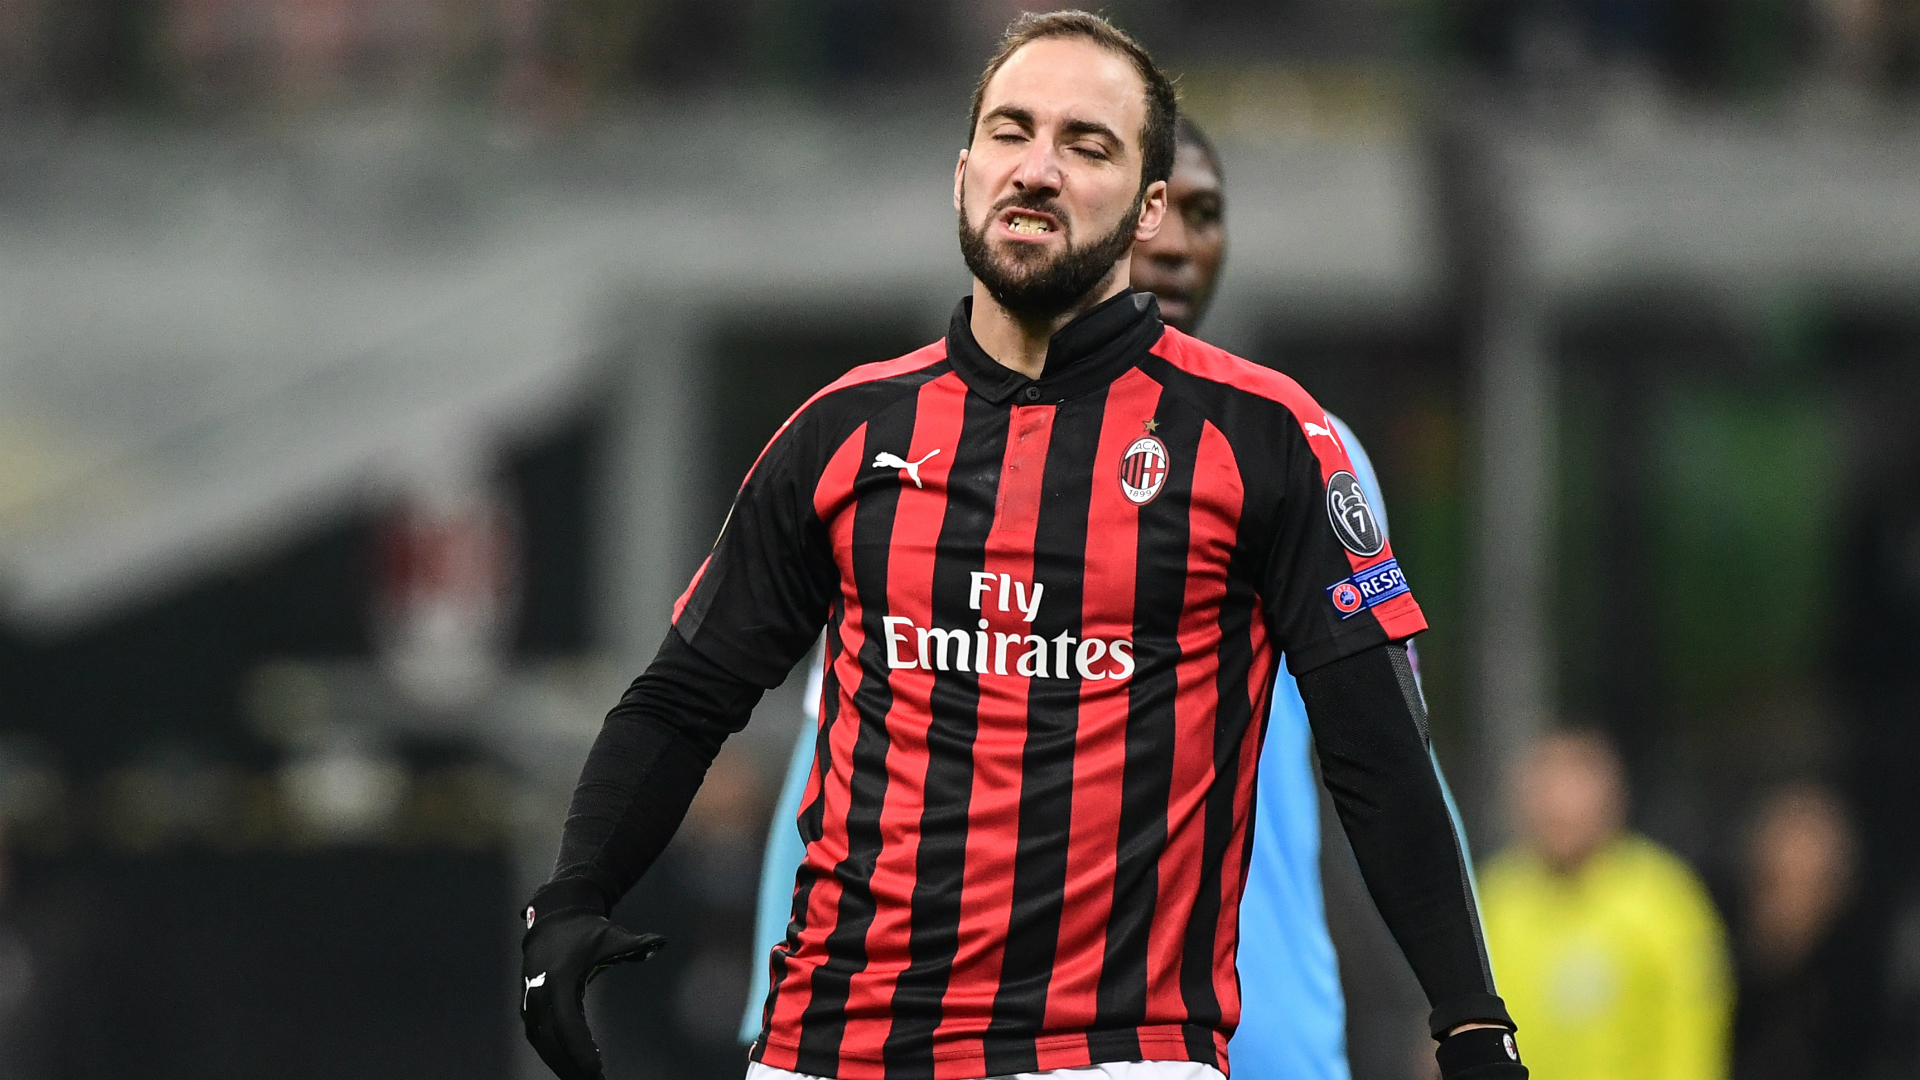 Higuain Agrees Terms With Chelsea